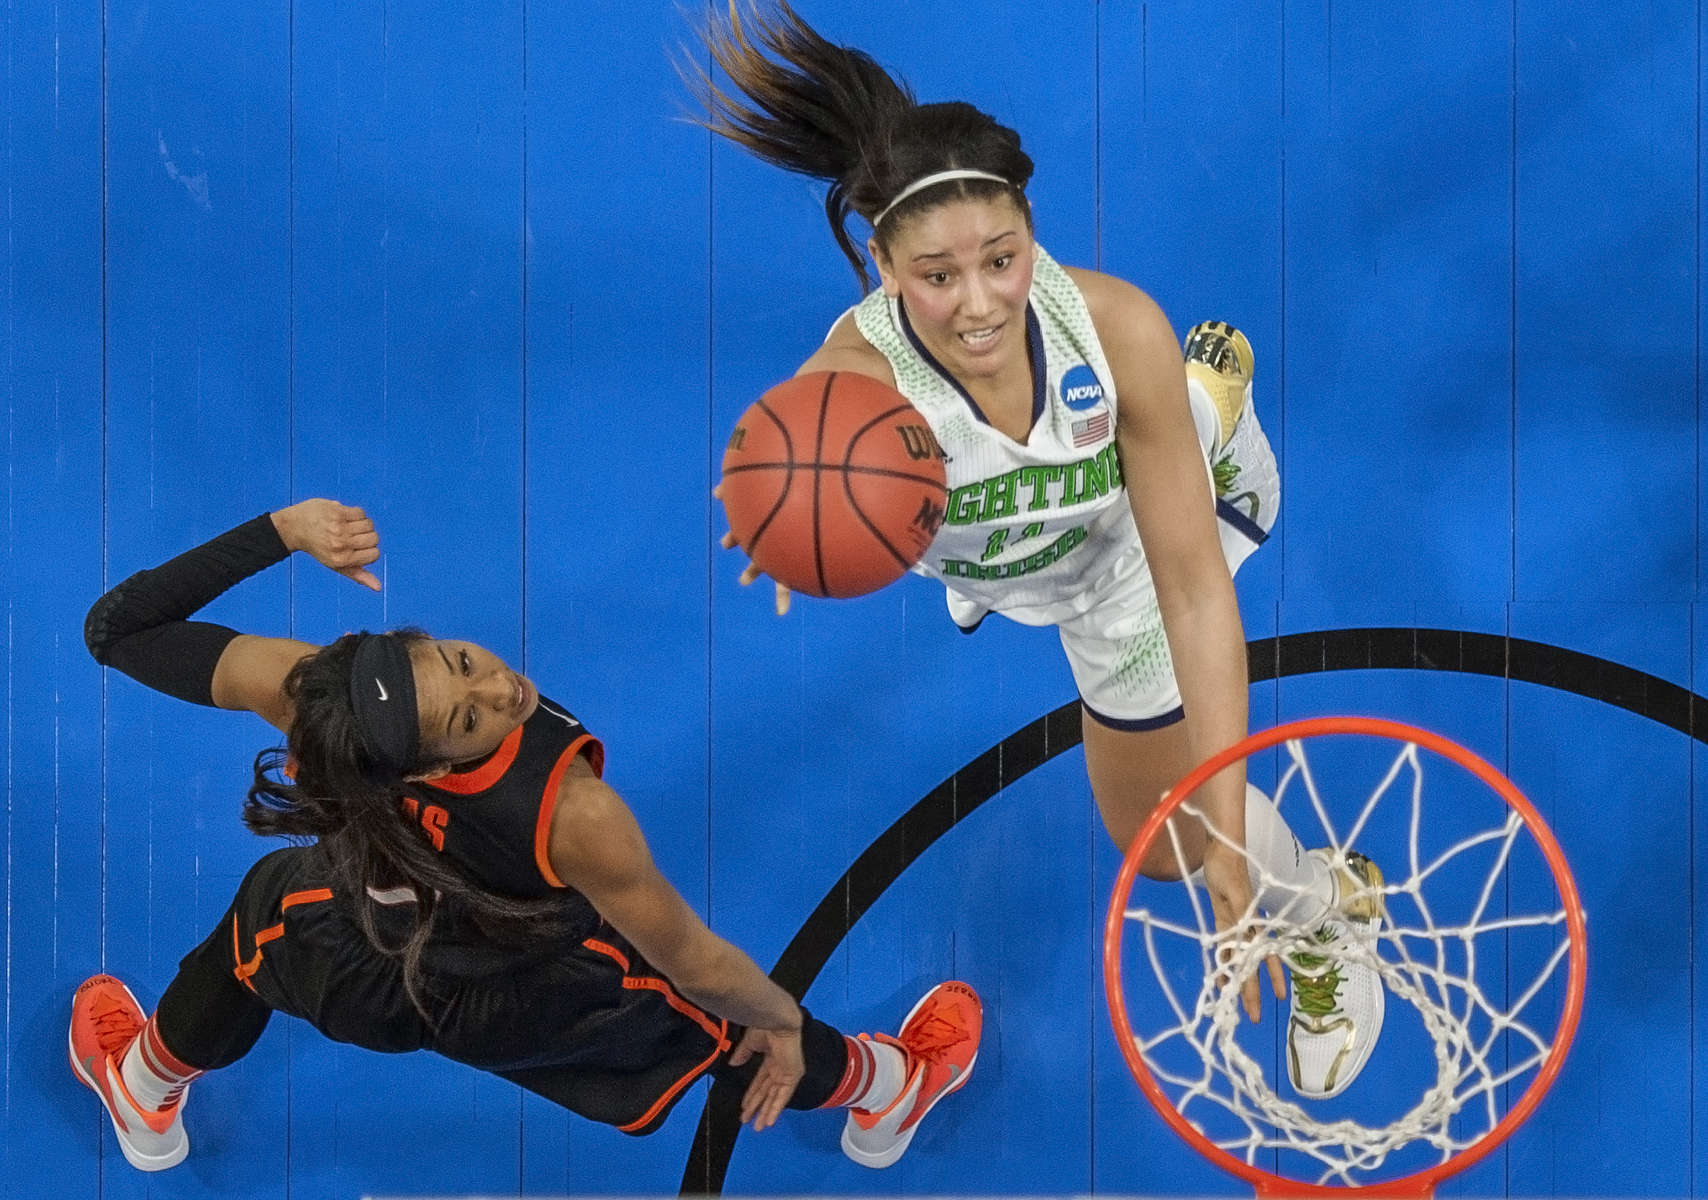 Notre Dame forward Natalie Achonwa shoots past Oklahoma guard Tiffany Bias during the regional semifinals at the Purcell Pavilion.